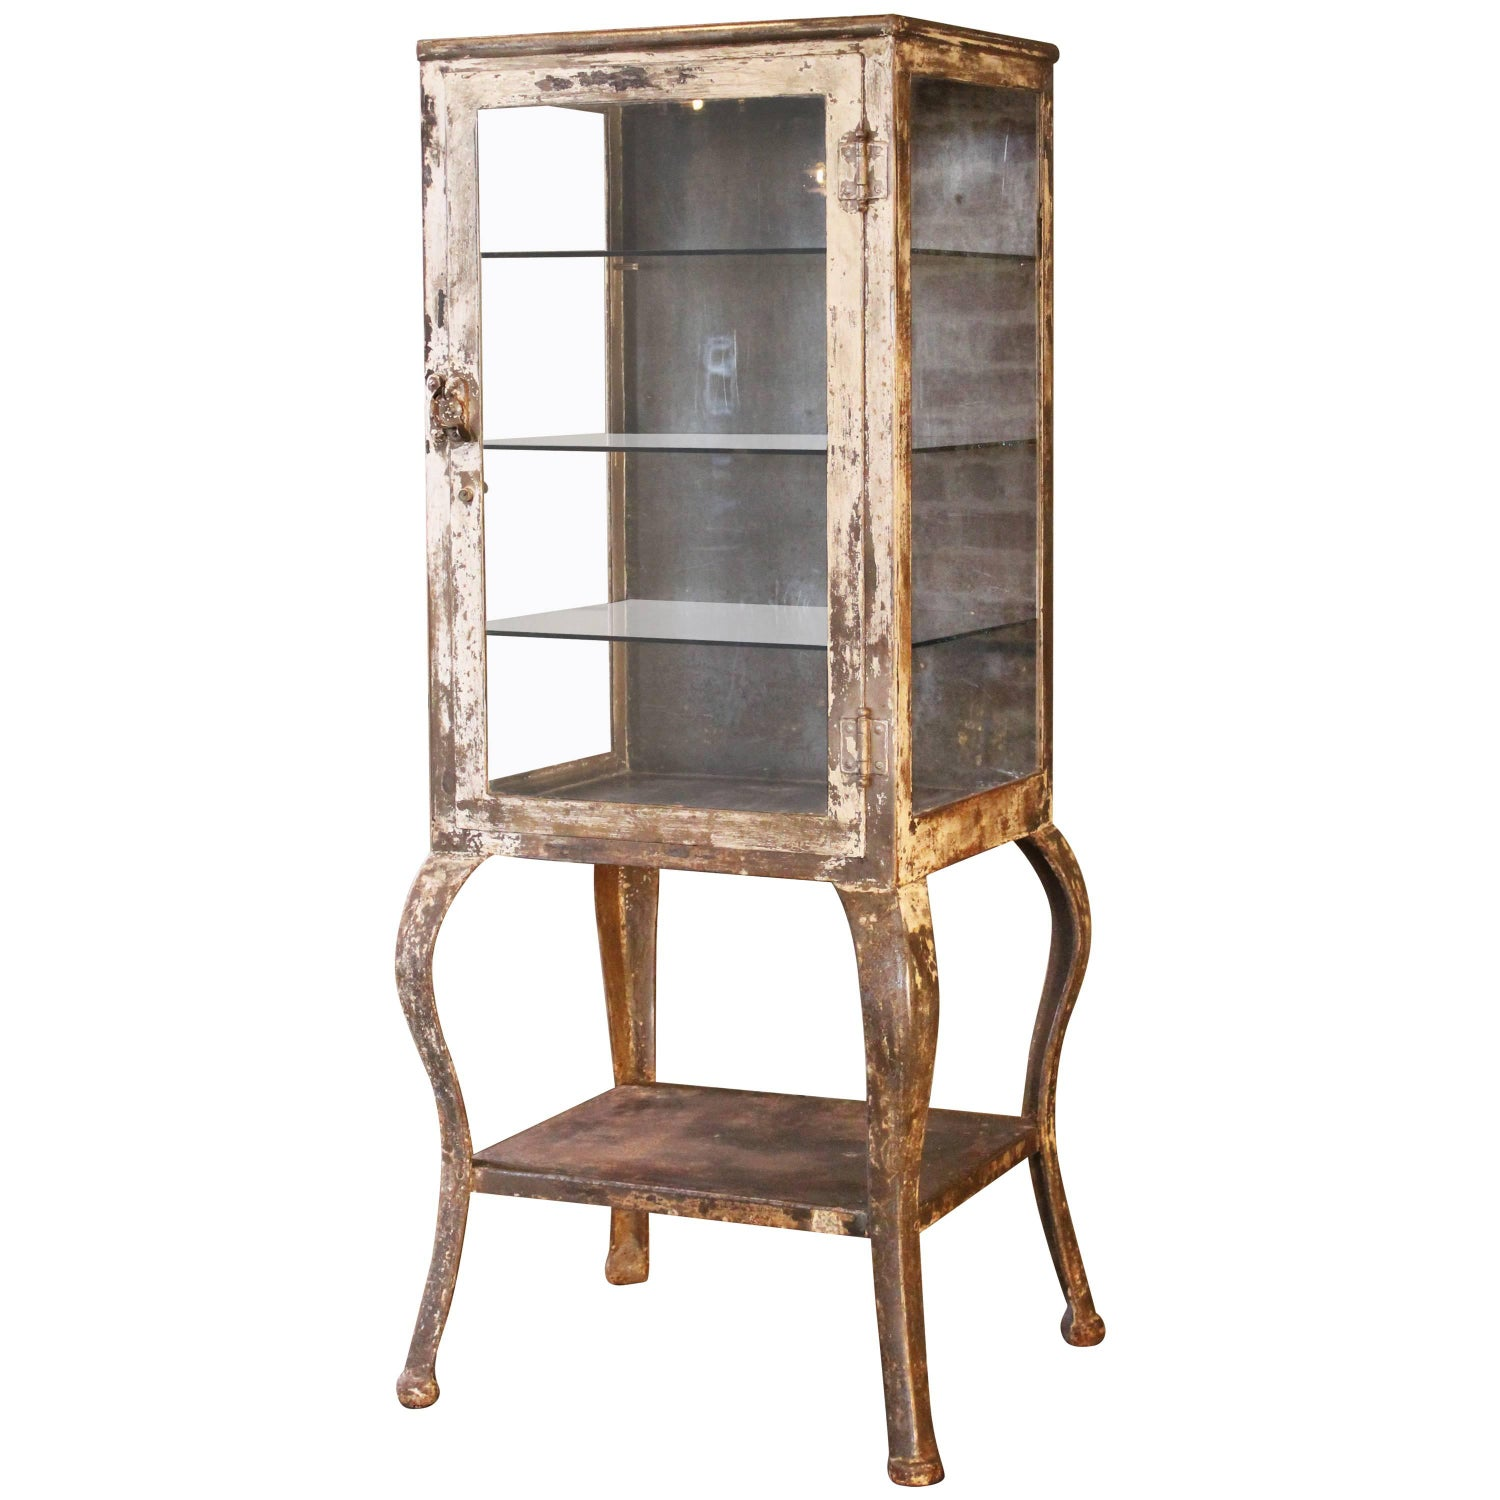 Antique Medical Cabinet with Cabriole Legs, Steel and Glass Apothecary - Antique And Vintage Apothecary Cabinets - 203 For Sale At 1stdibs